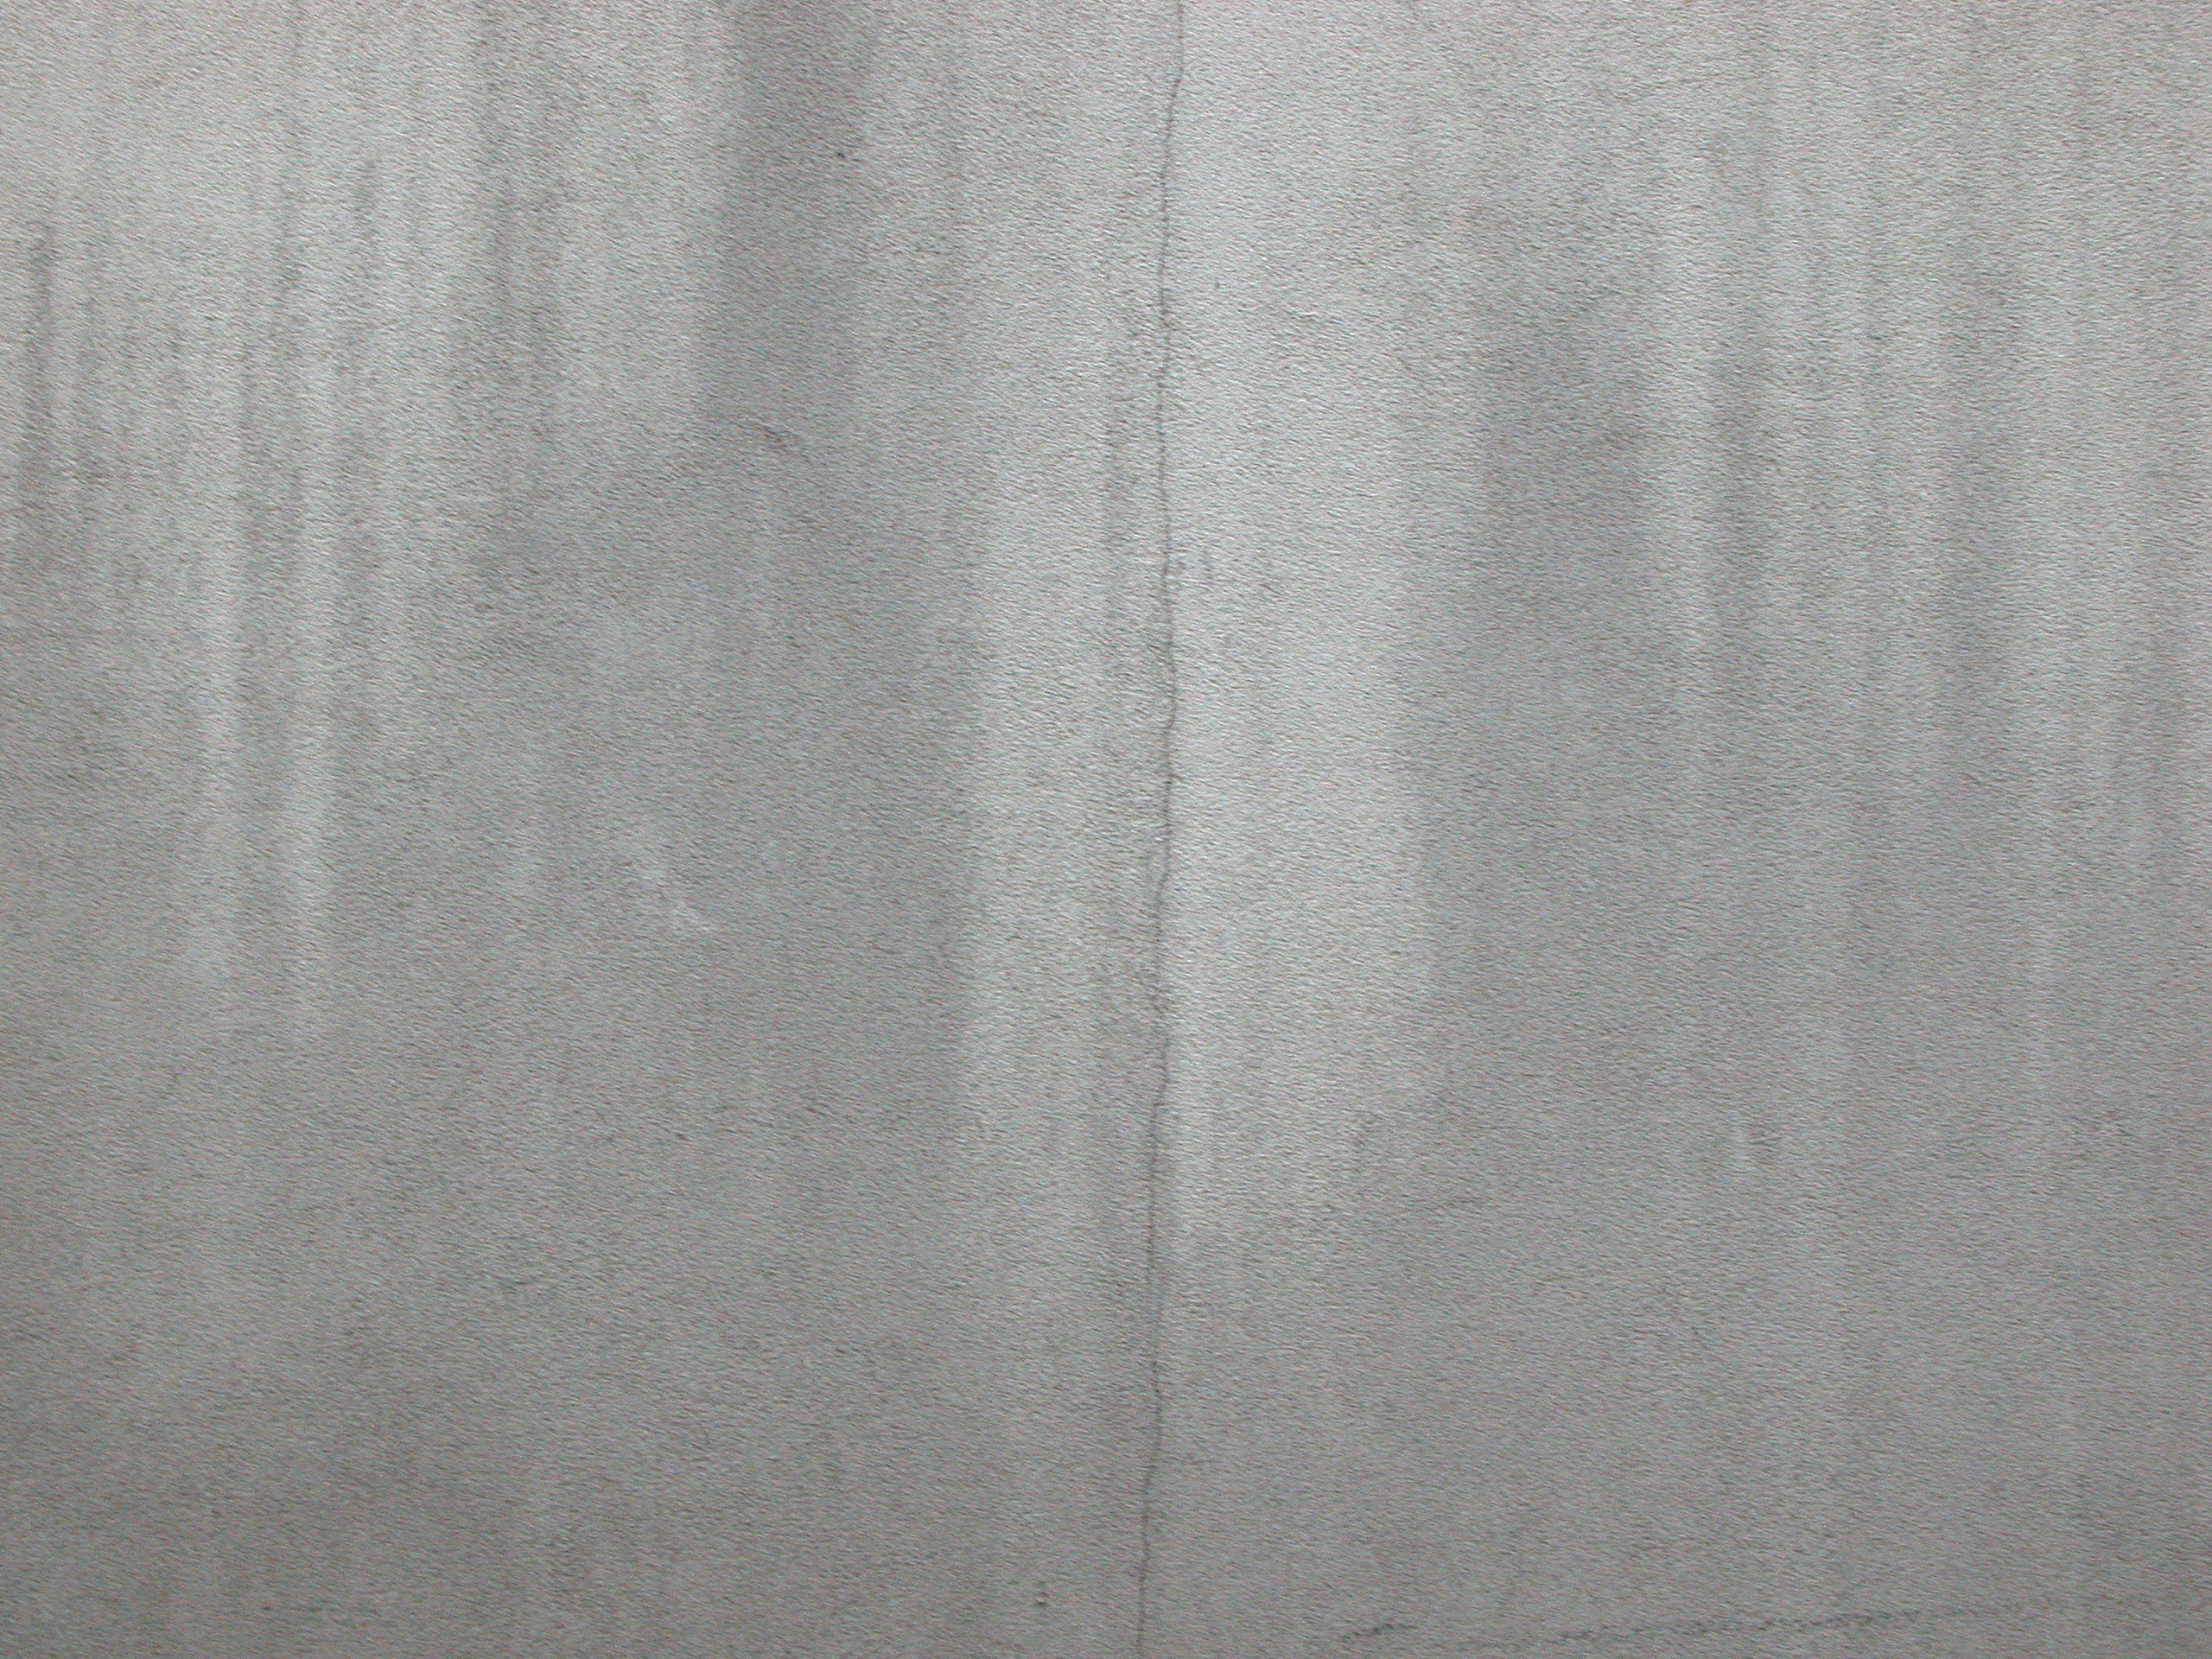 concrete wall grey with dirt 2560x1920